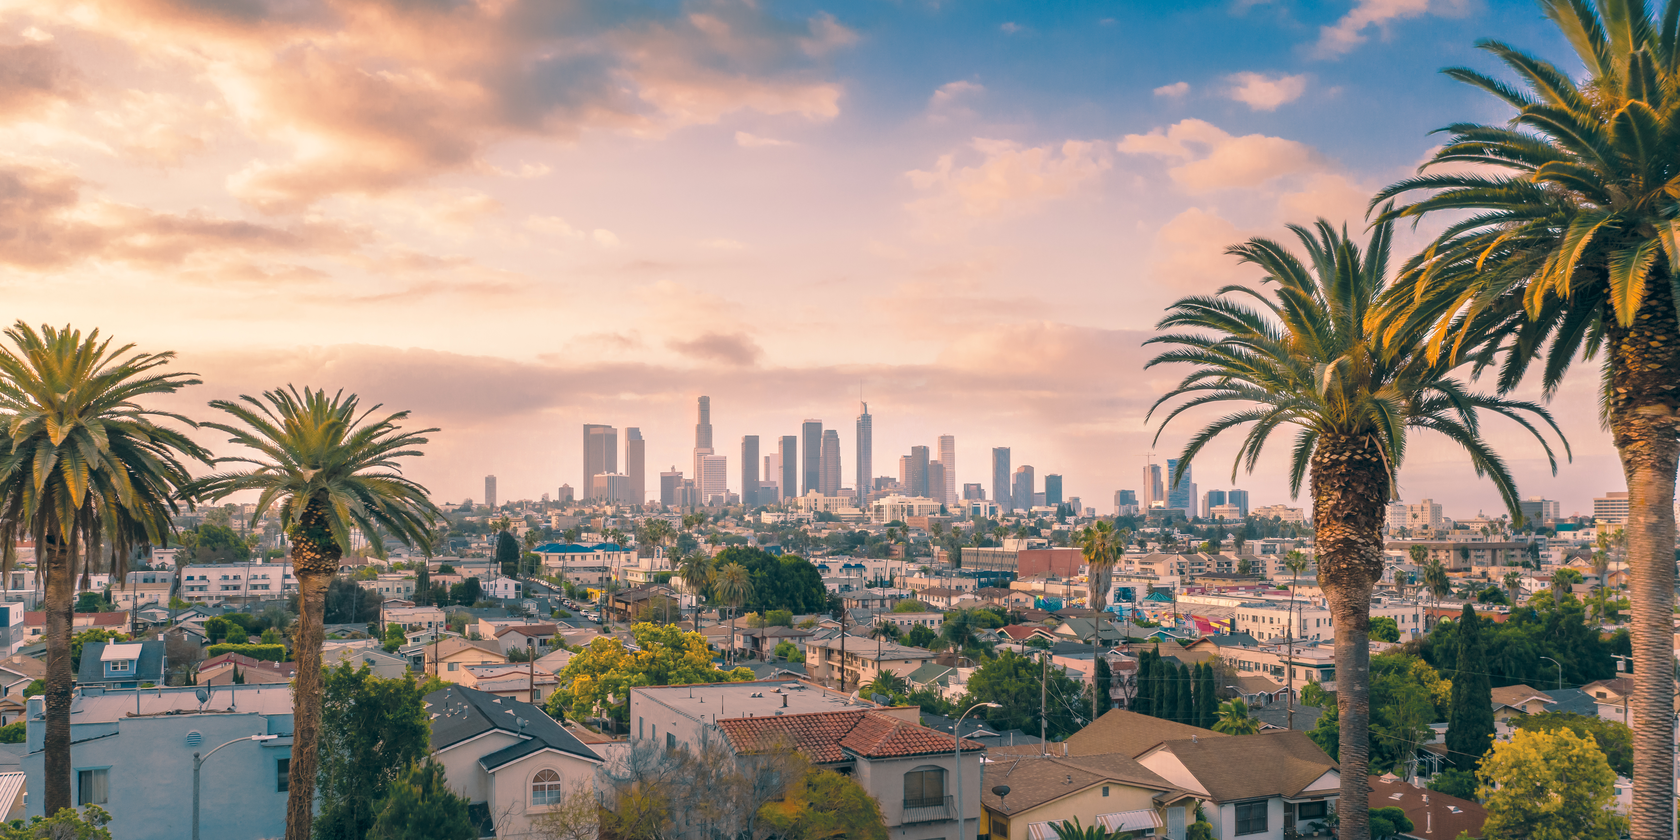 opening a dispensary in California